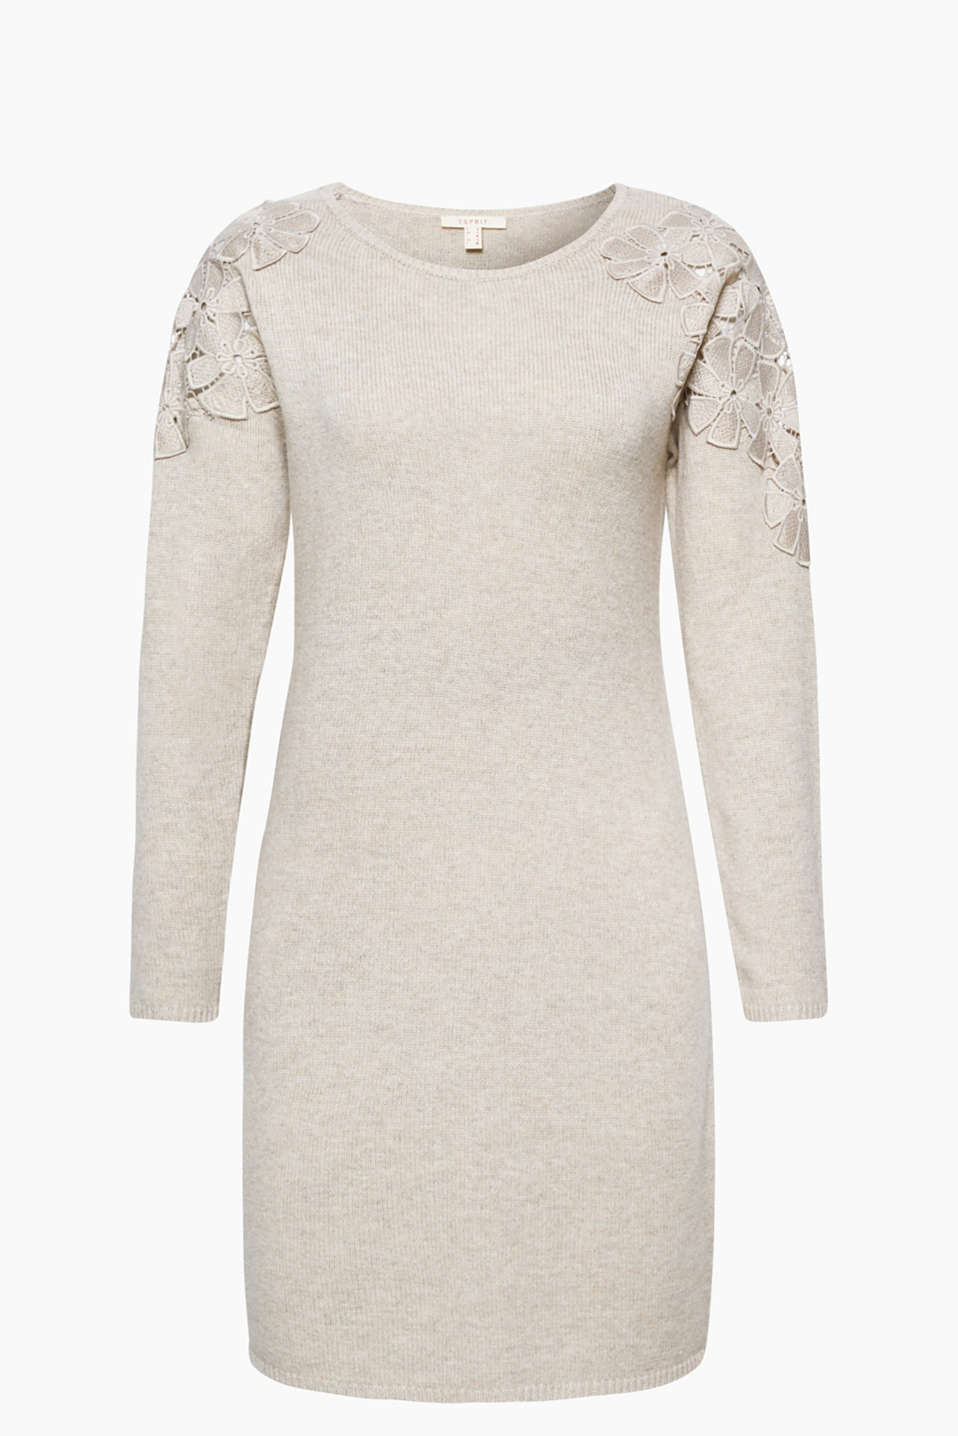 This soft knitted dress with appliquéd, semi-sheer flowers will give you great shoulders!